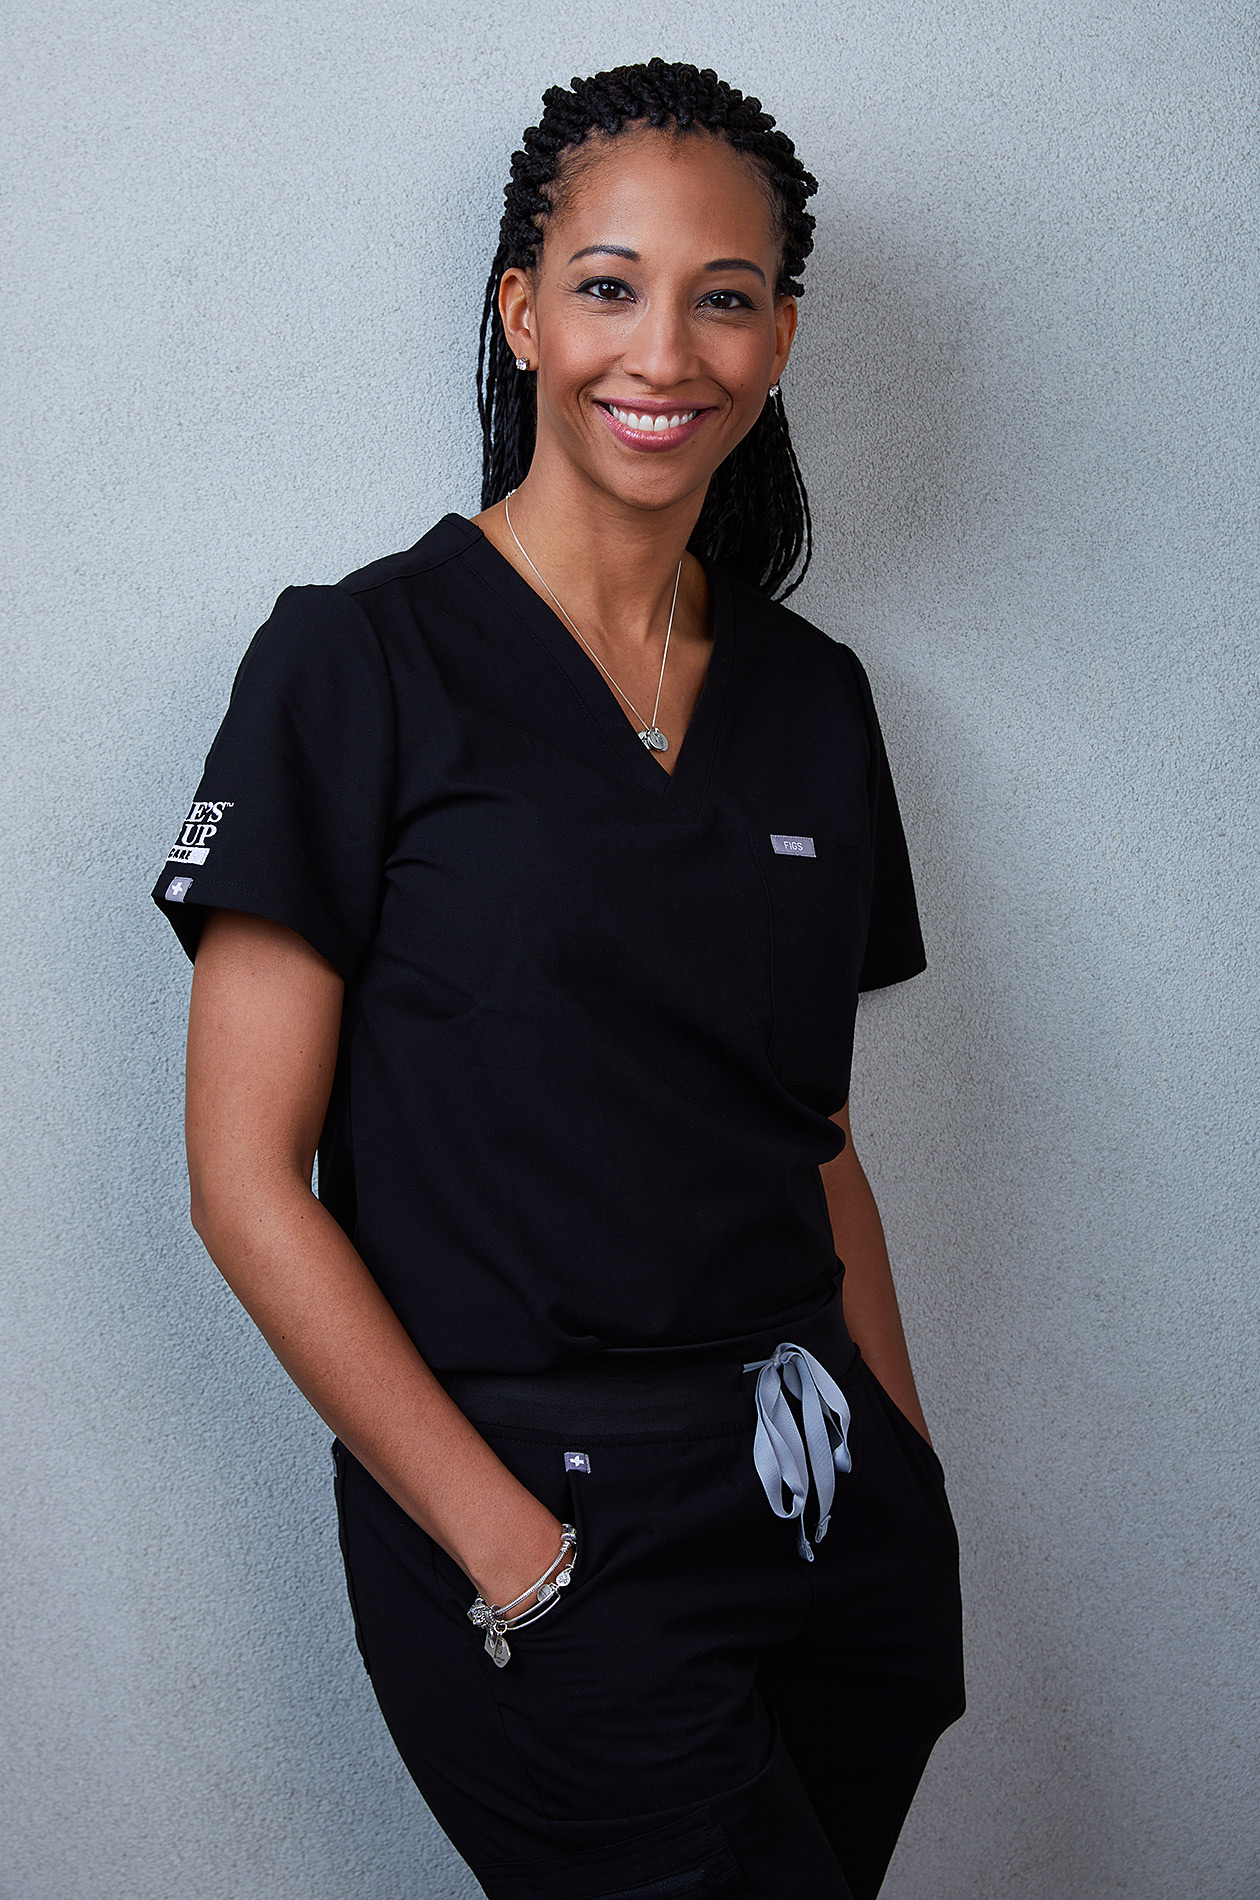 Instyle - Dr. Rhonda Acholonu - Steve Craft Photography - Phoenix Arizona Commercial Photographer